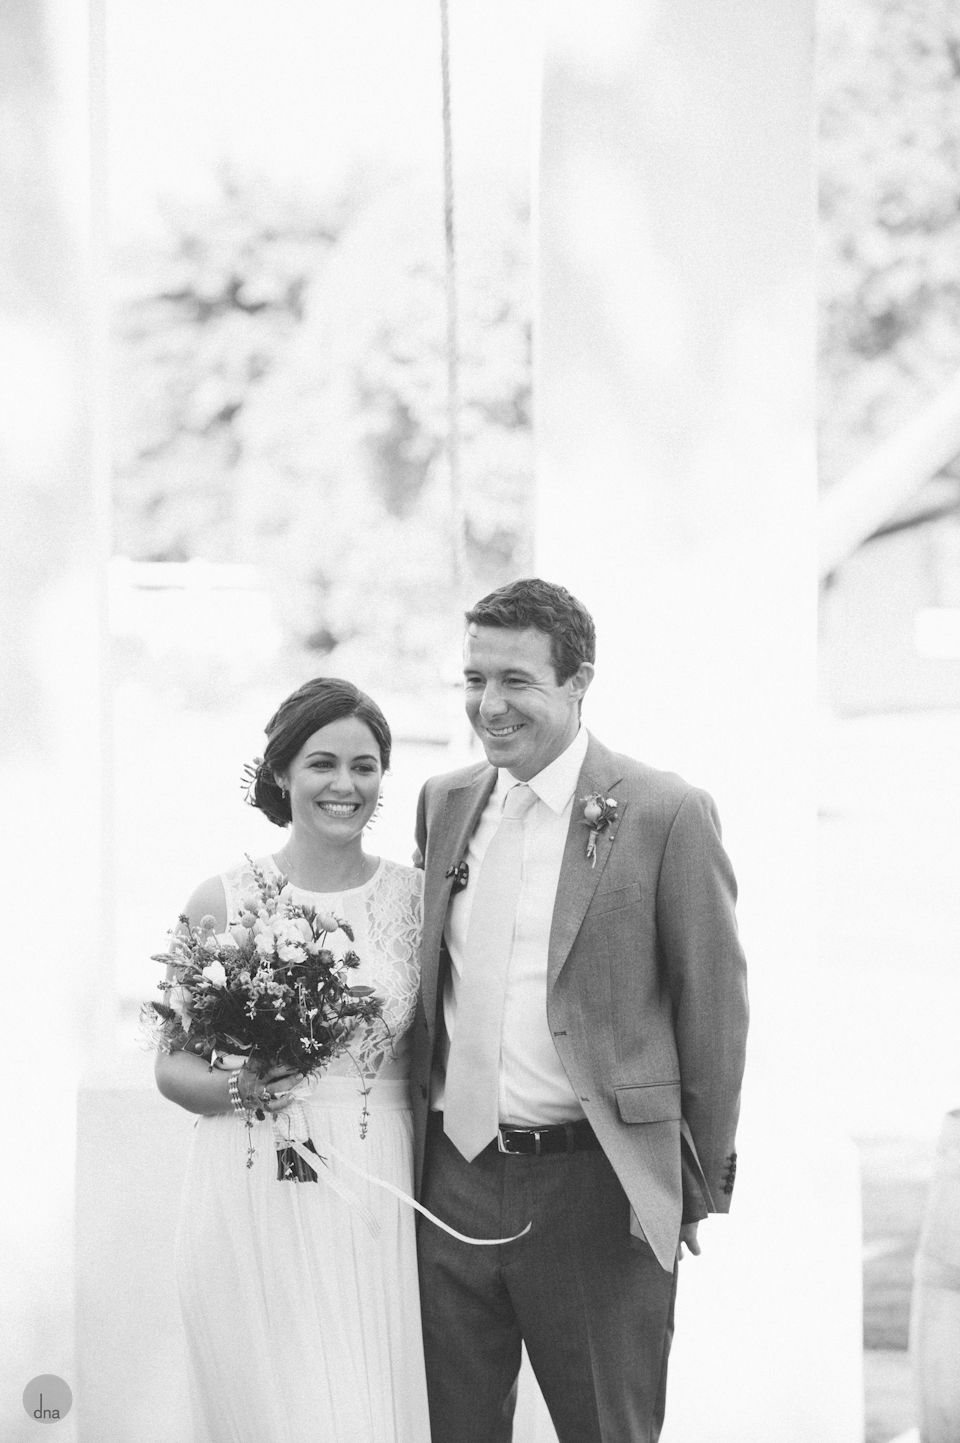 Caroline and Nicholas wedding Zorgvliet Stellenbosch South Africa shot by dna photographers 201.jpg